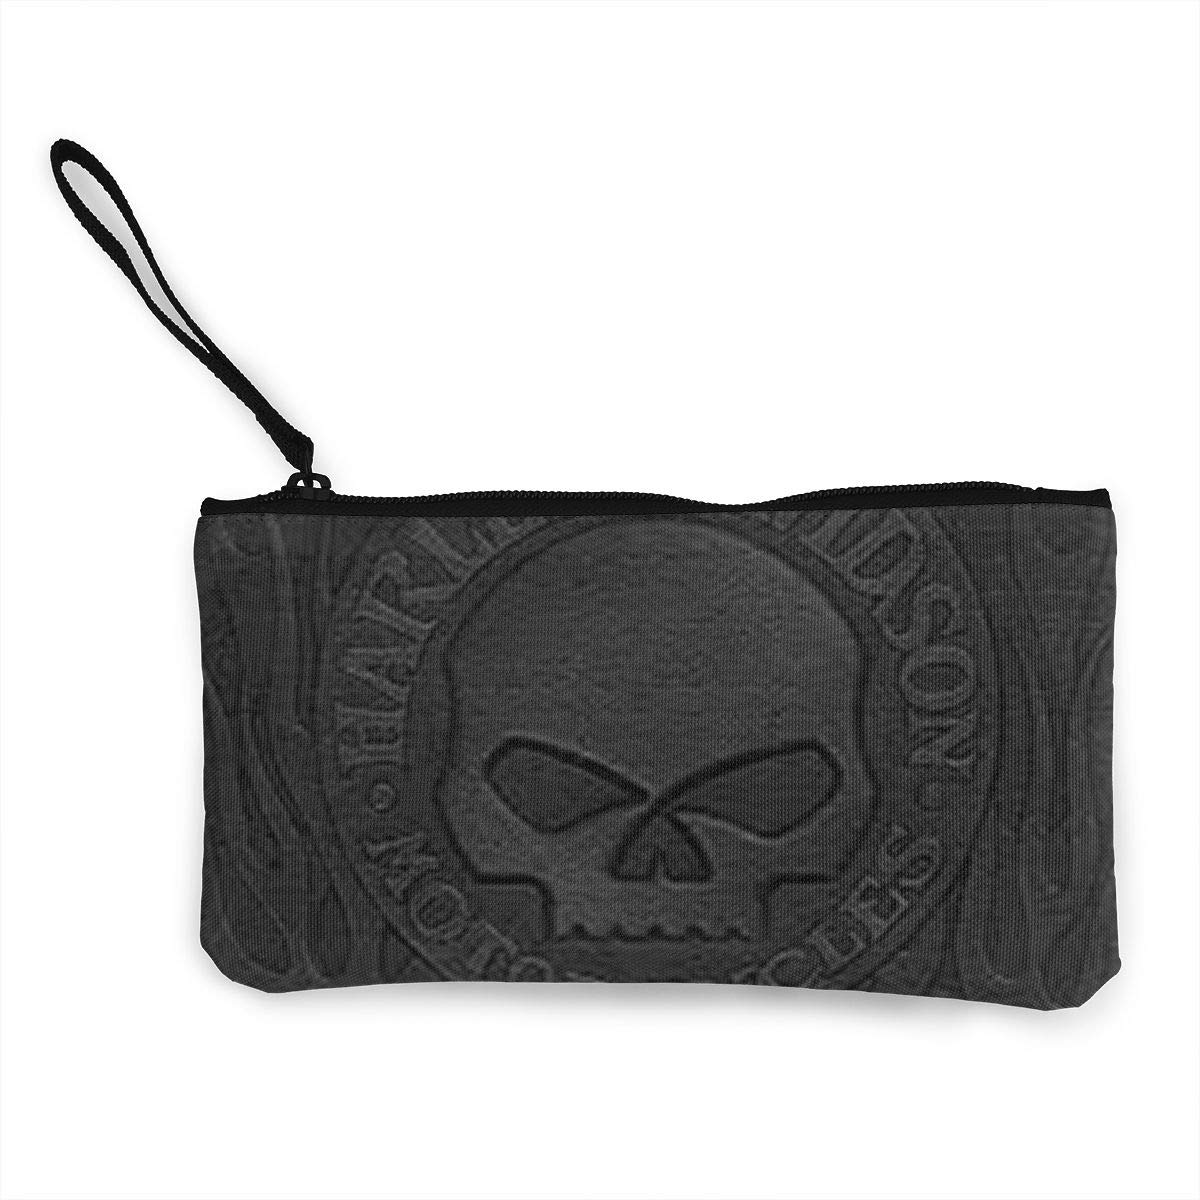 Harley Davidson Coin Purse Pouch Wallet for Cash, Mobile Phone, Bank Card, Passport, Coin with Zipper Shannon Brownrices